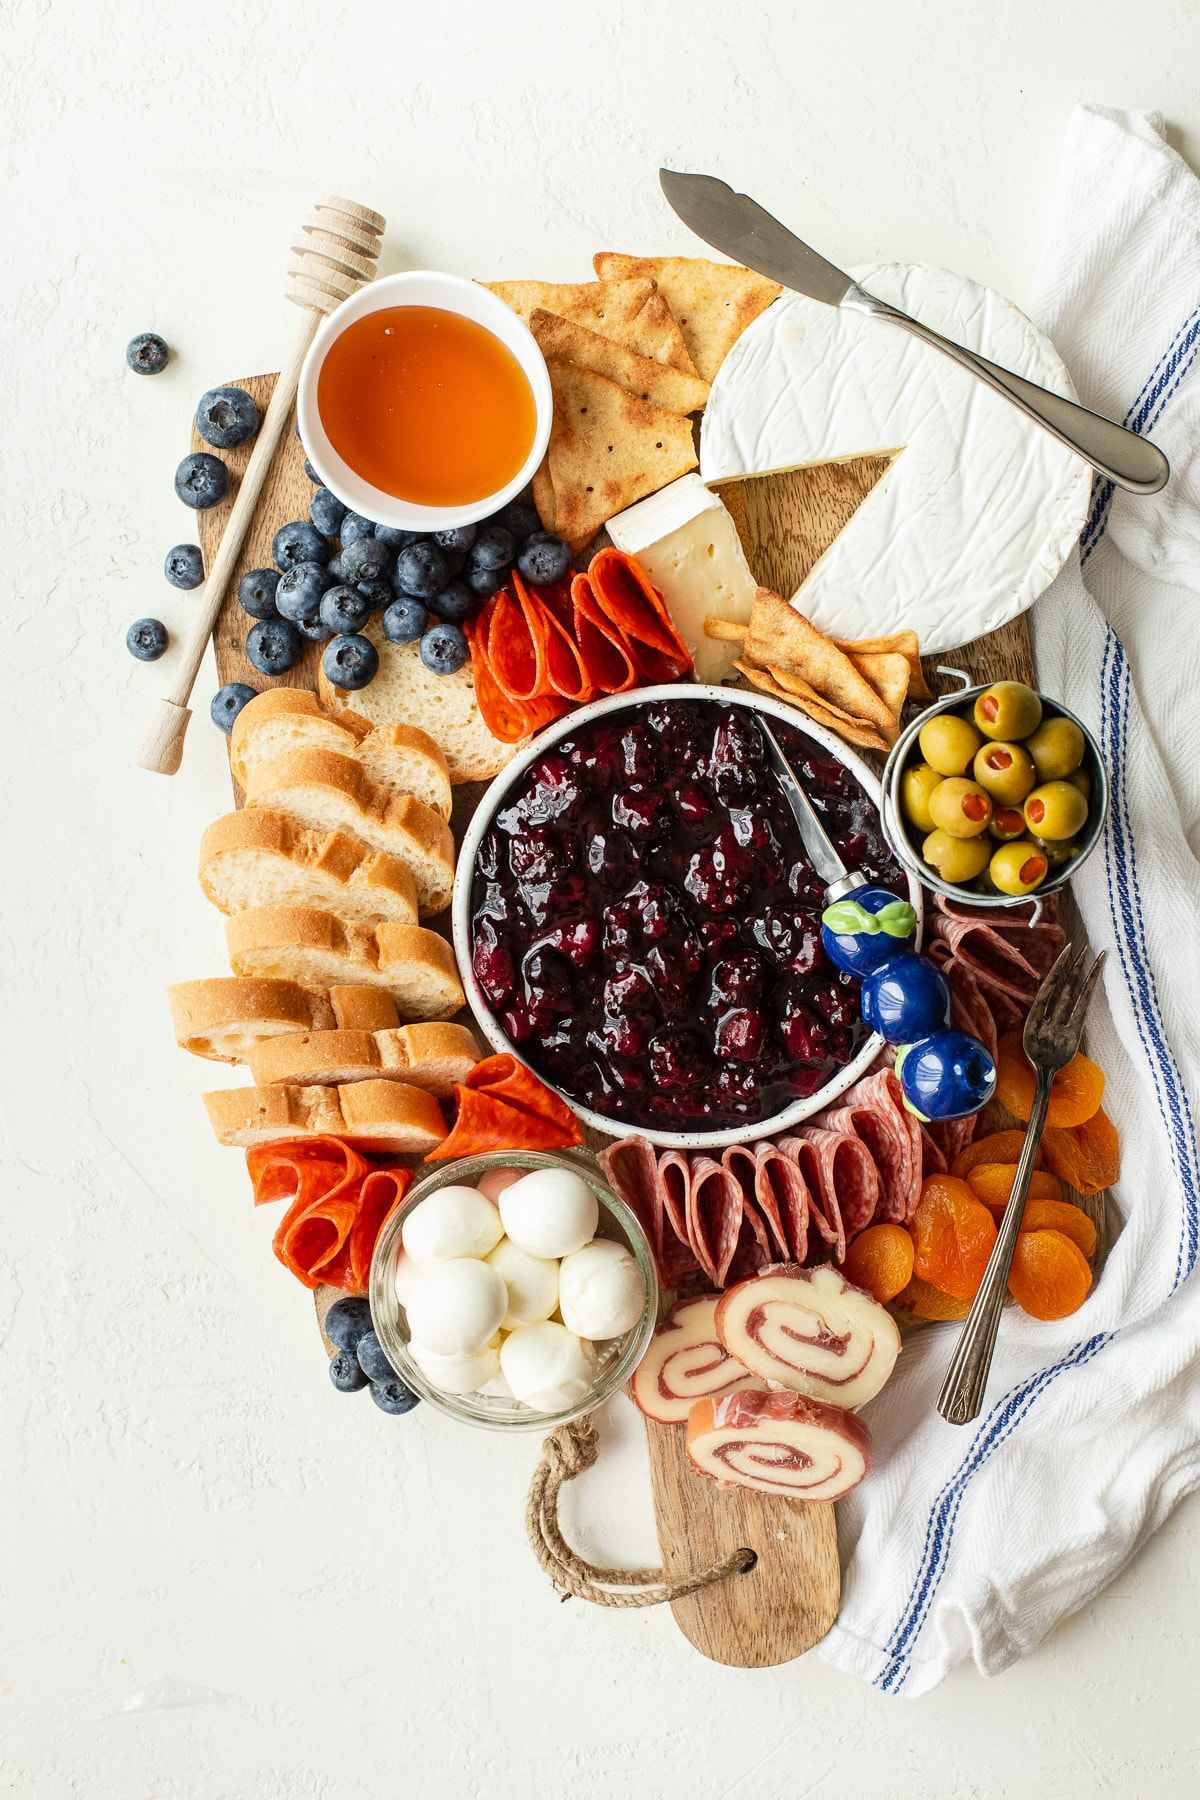 Charcuterie board with a variety of meats, cheeses, crackers, and bread, plus homemade fruit compote.